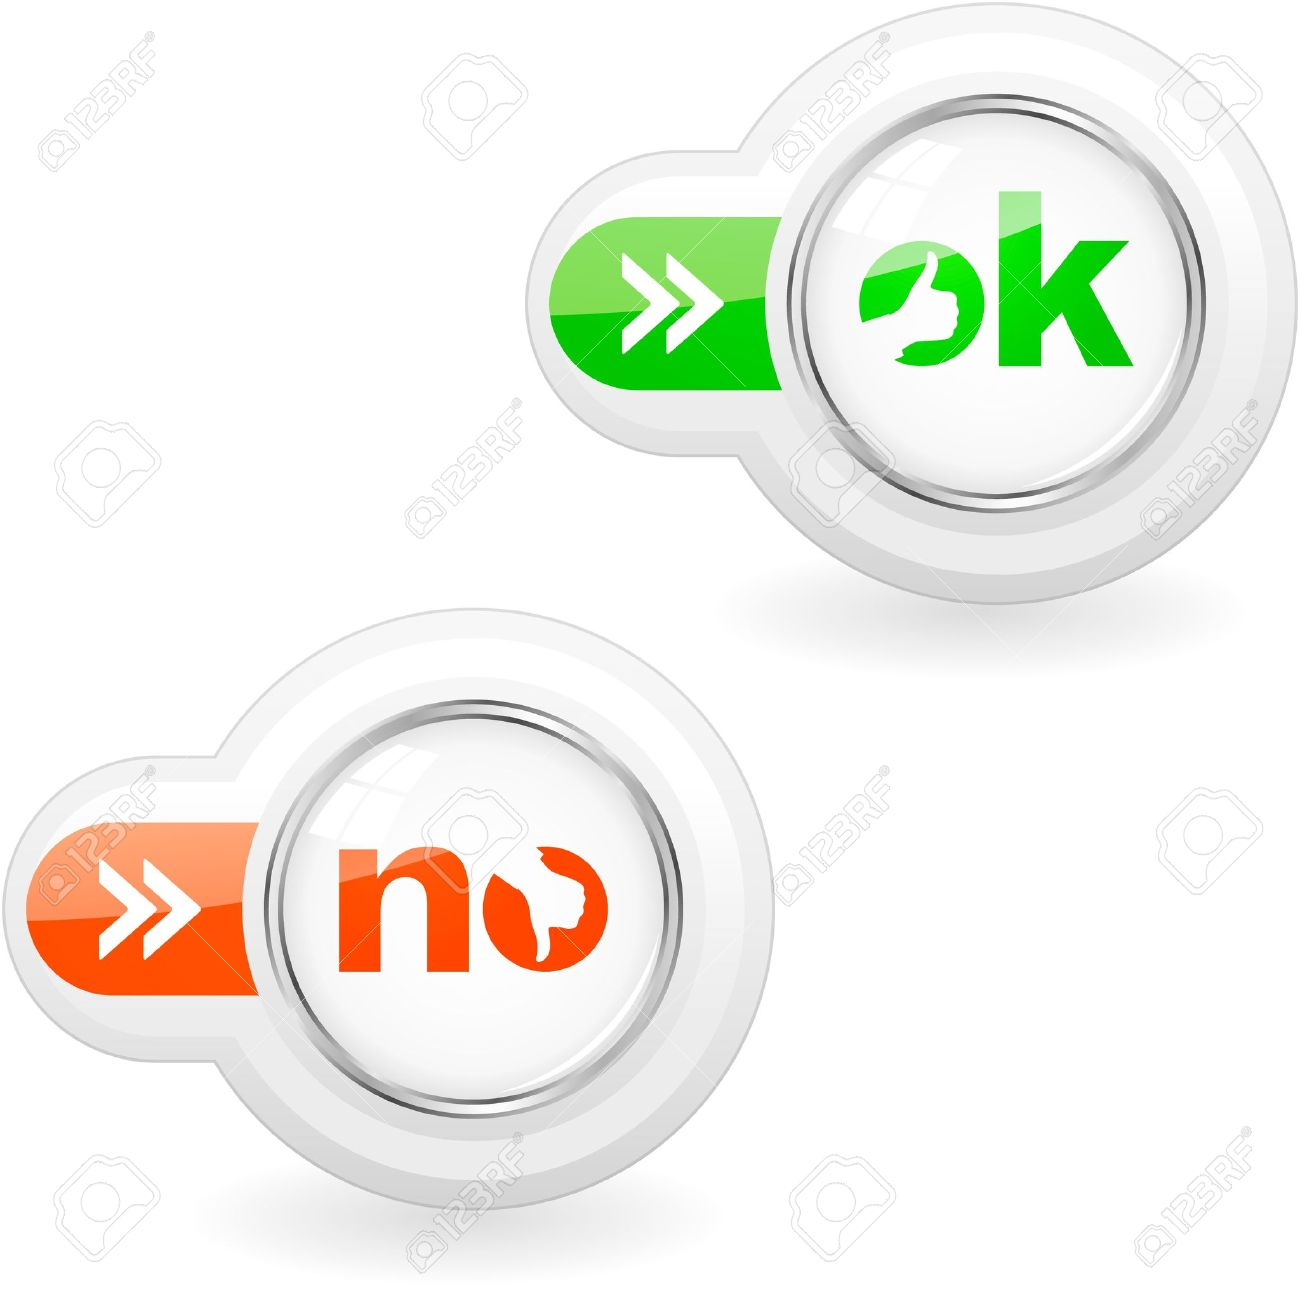 Approved and rejected icons. Stock Vector - 11256906